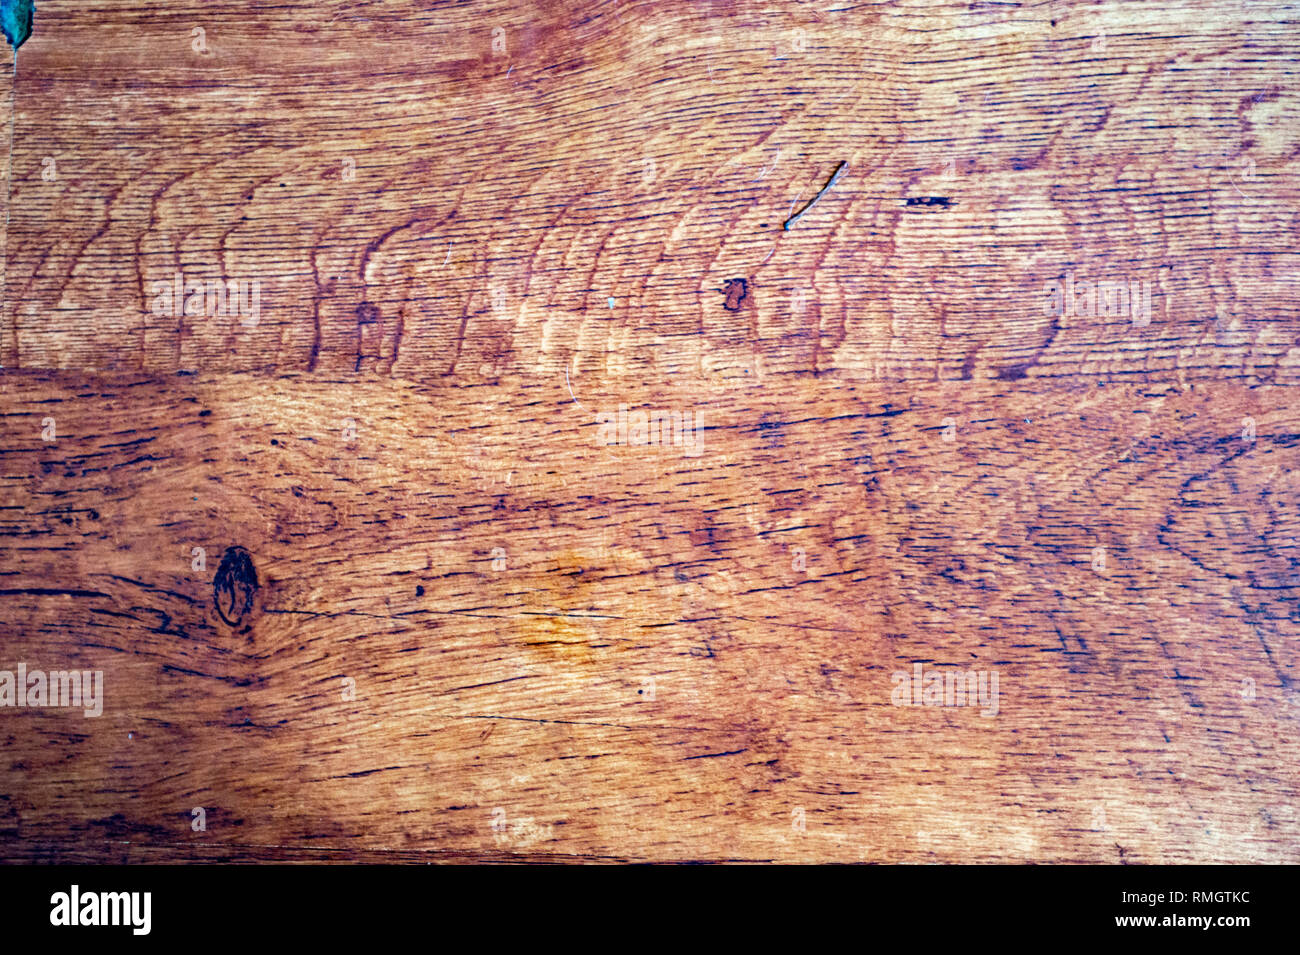 Old wood showing signs of wear and stain - - Stock Image